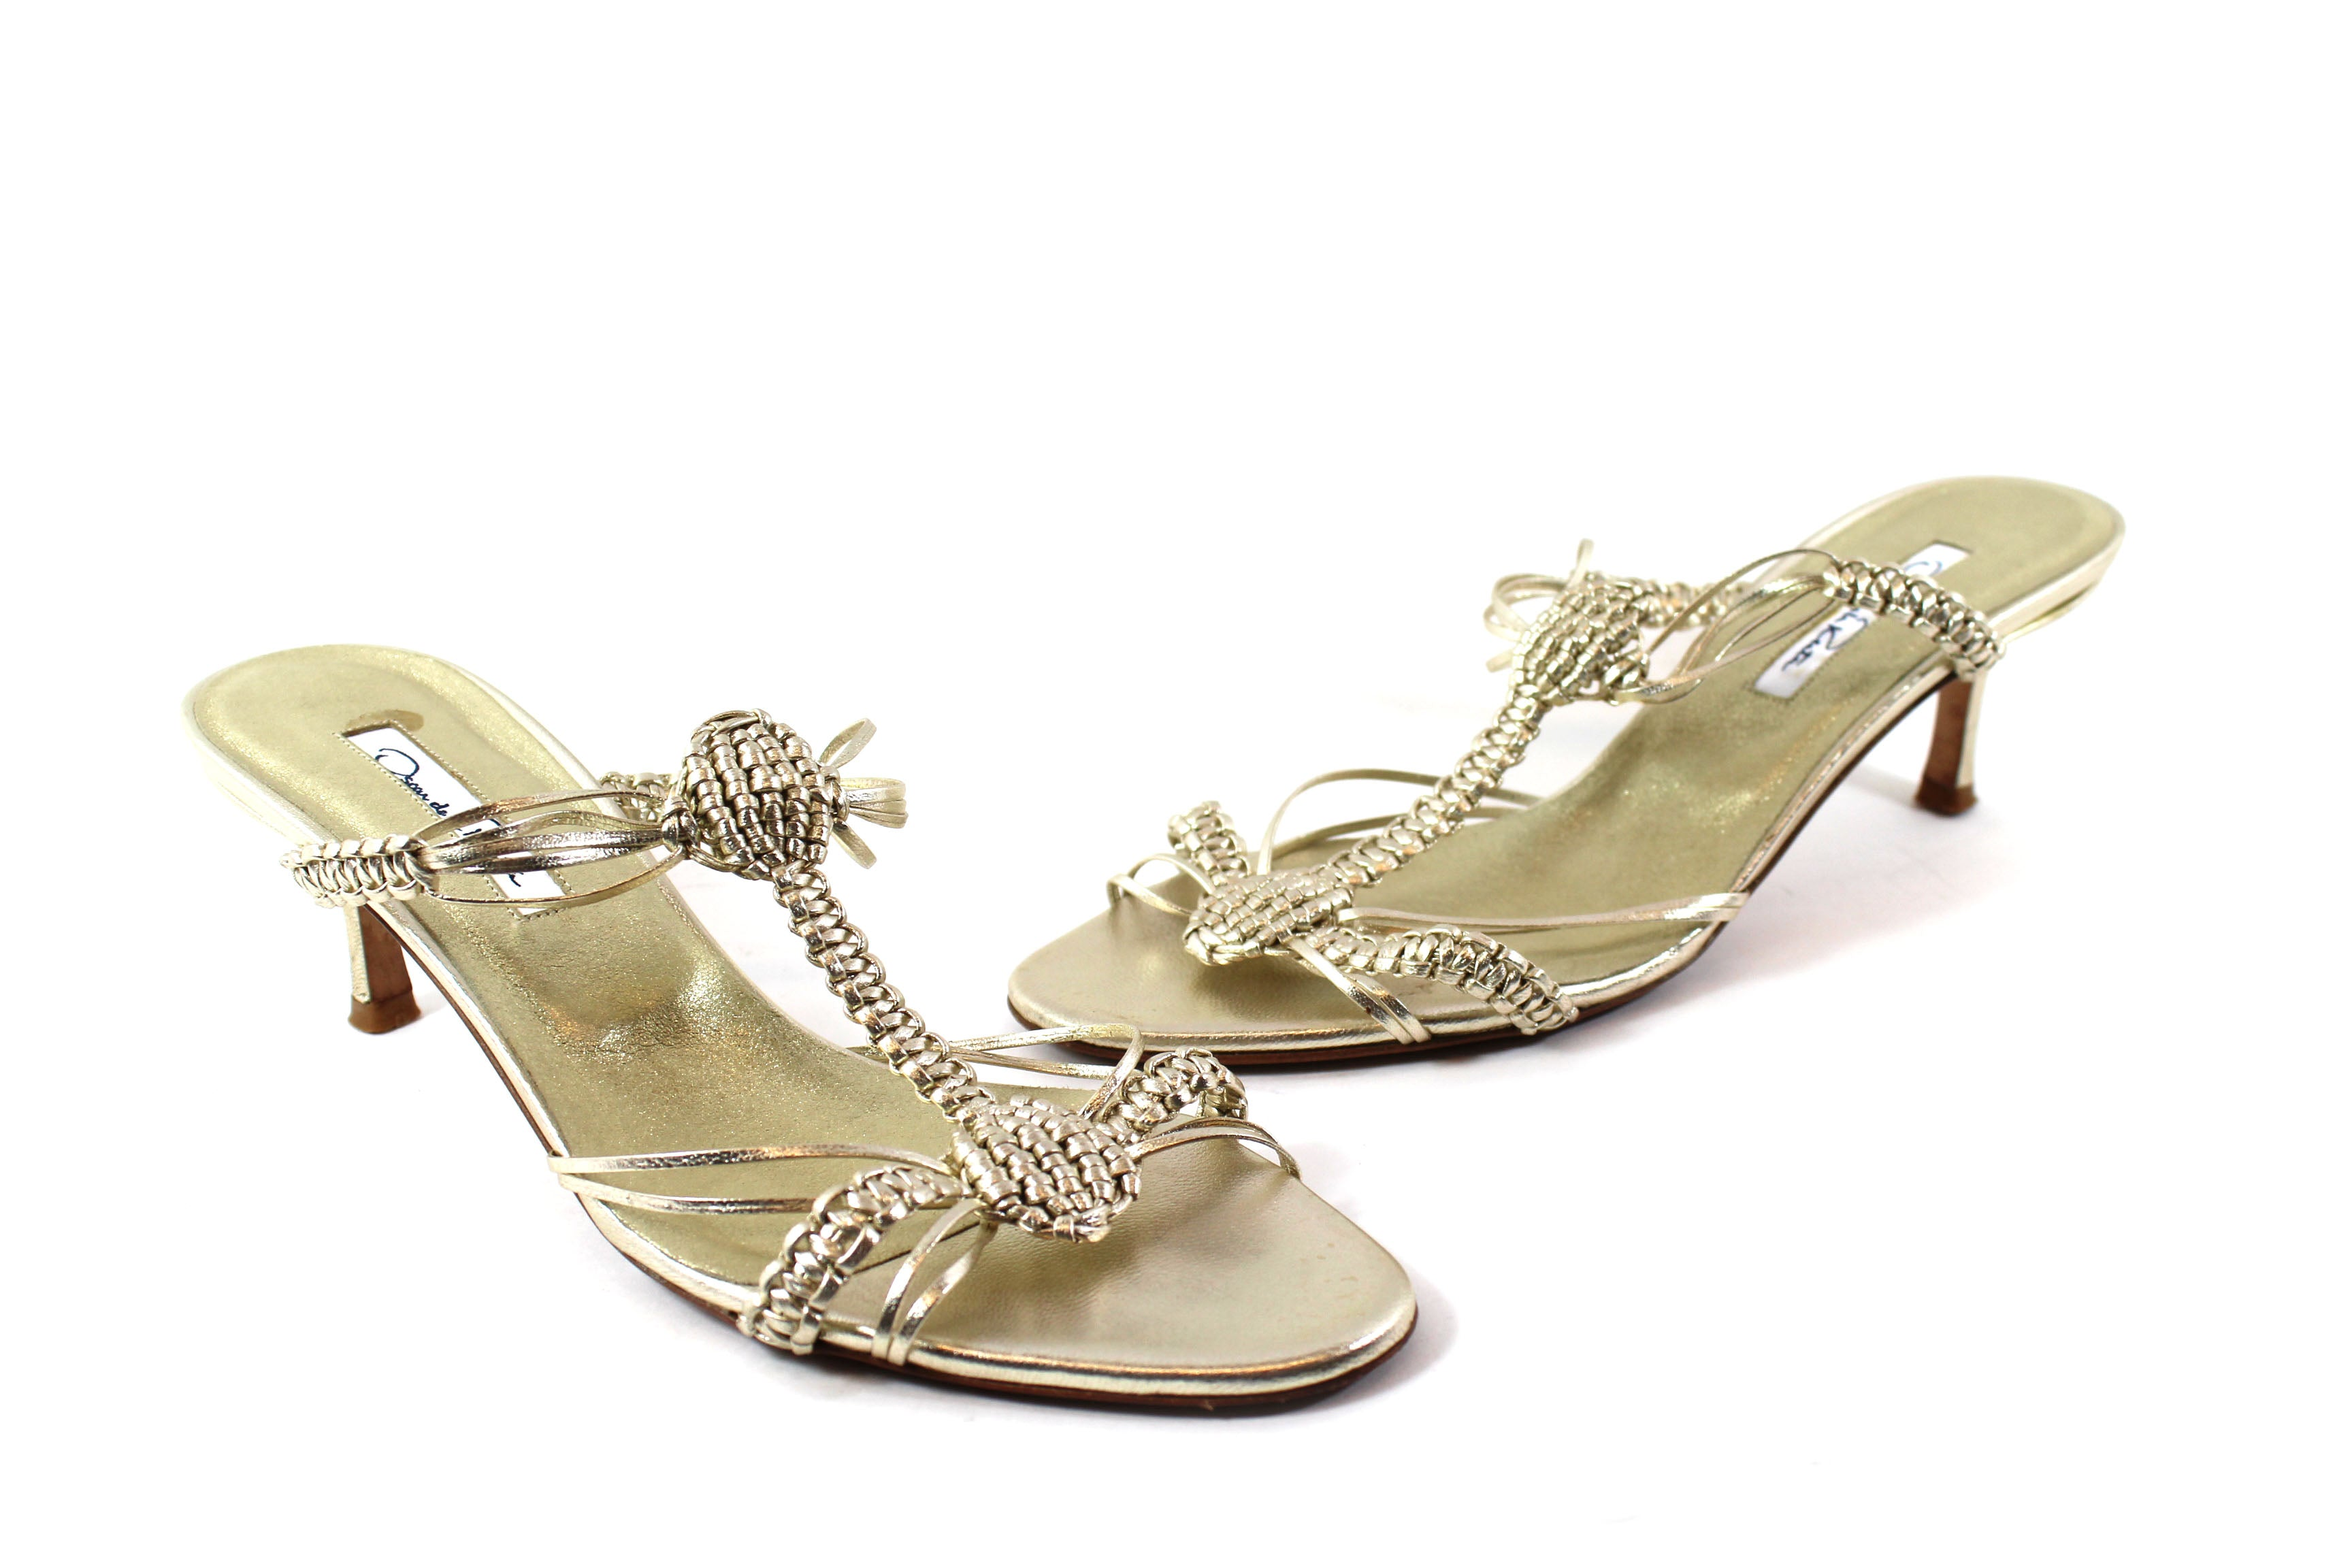 Oscar de la Renta Metallic Gold Braided Leather Sandals (Size 37.5)